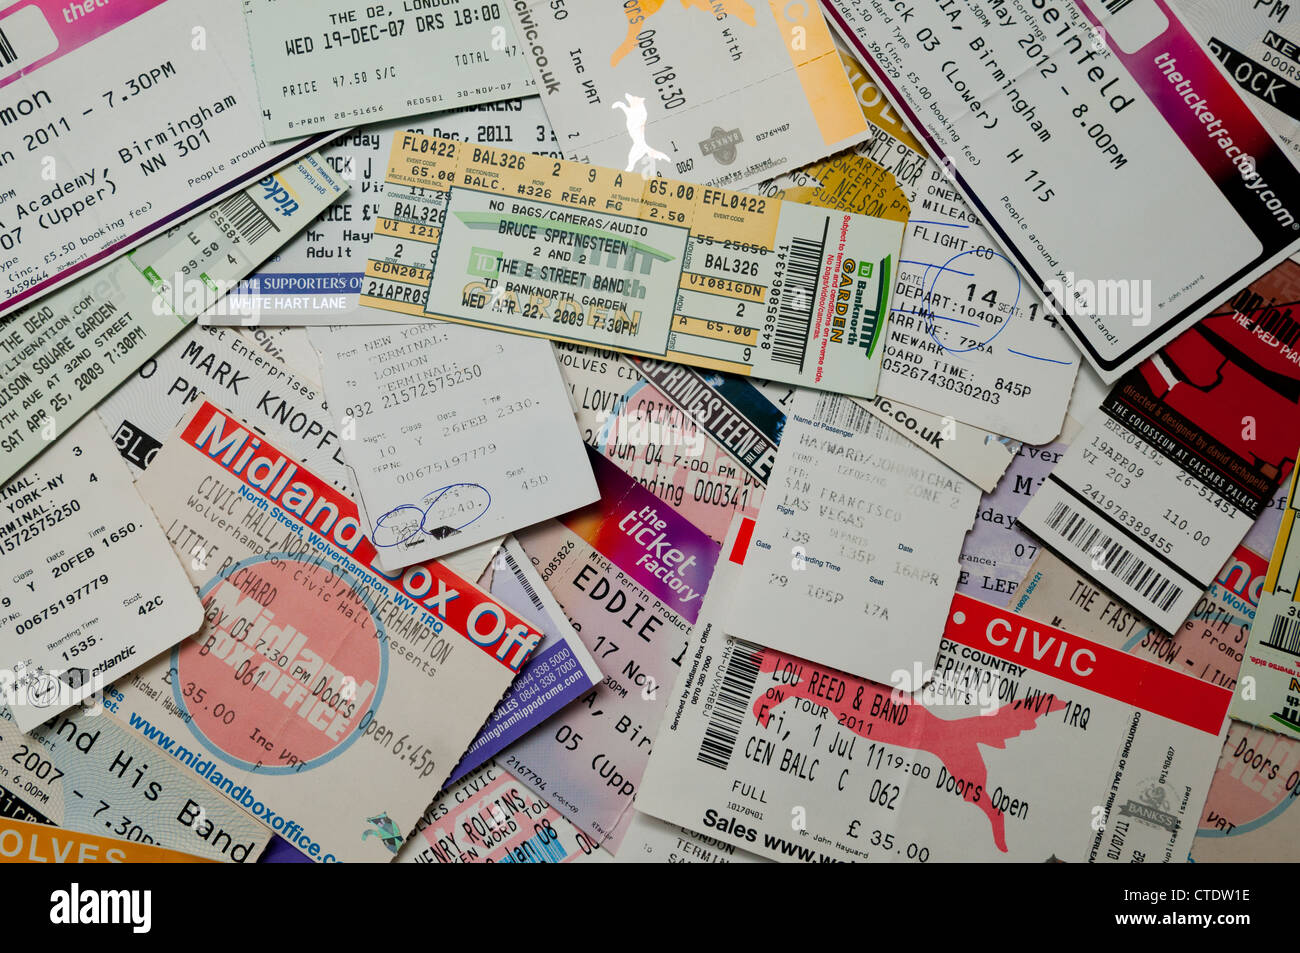 A pile of concert and airplane tickets - Stock Image